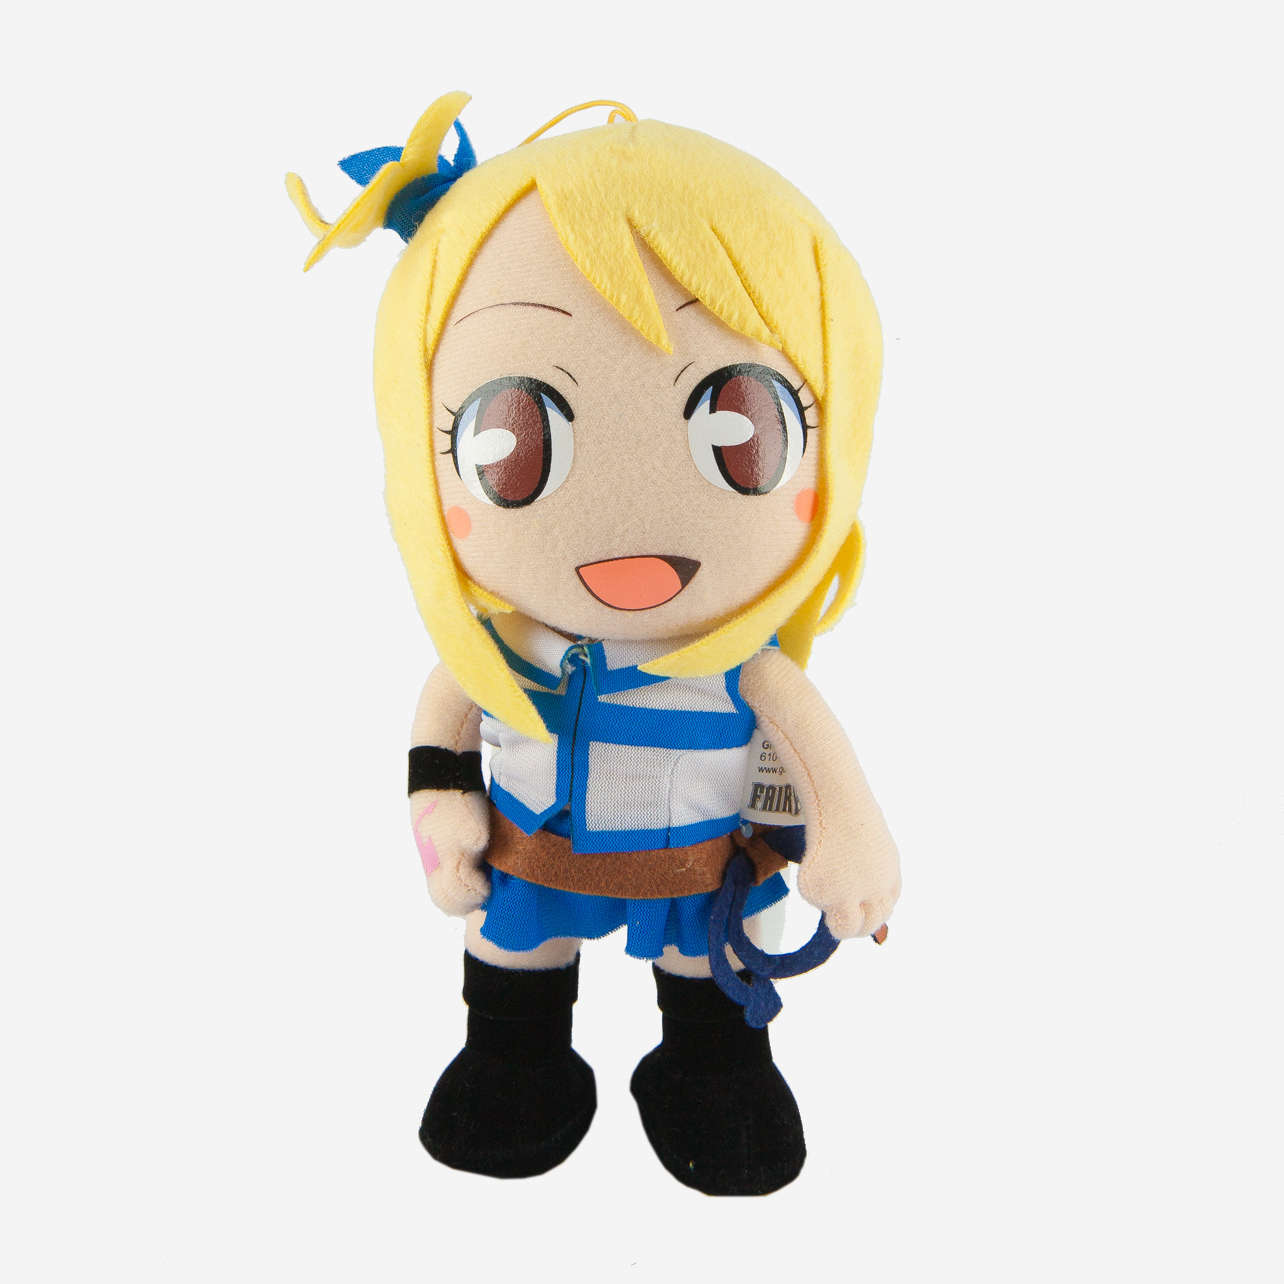 Lucy Plush Toys & Games